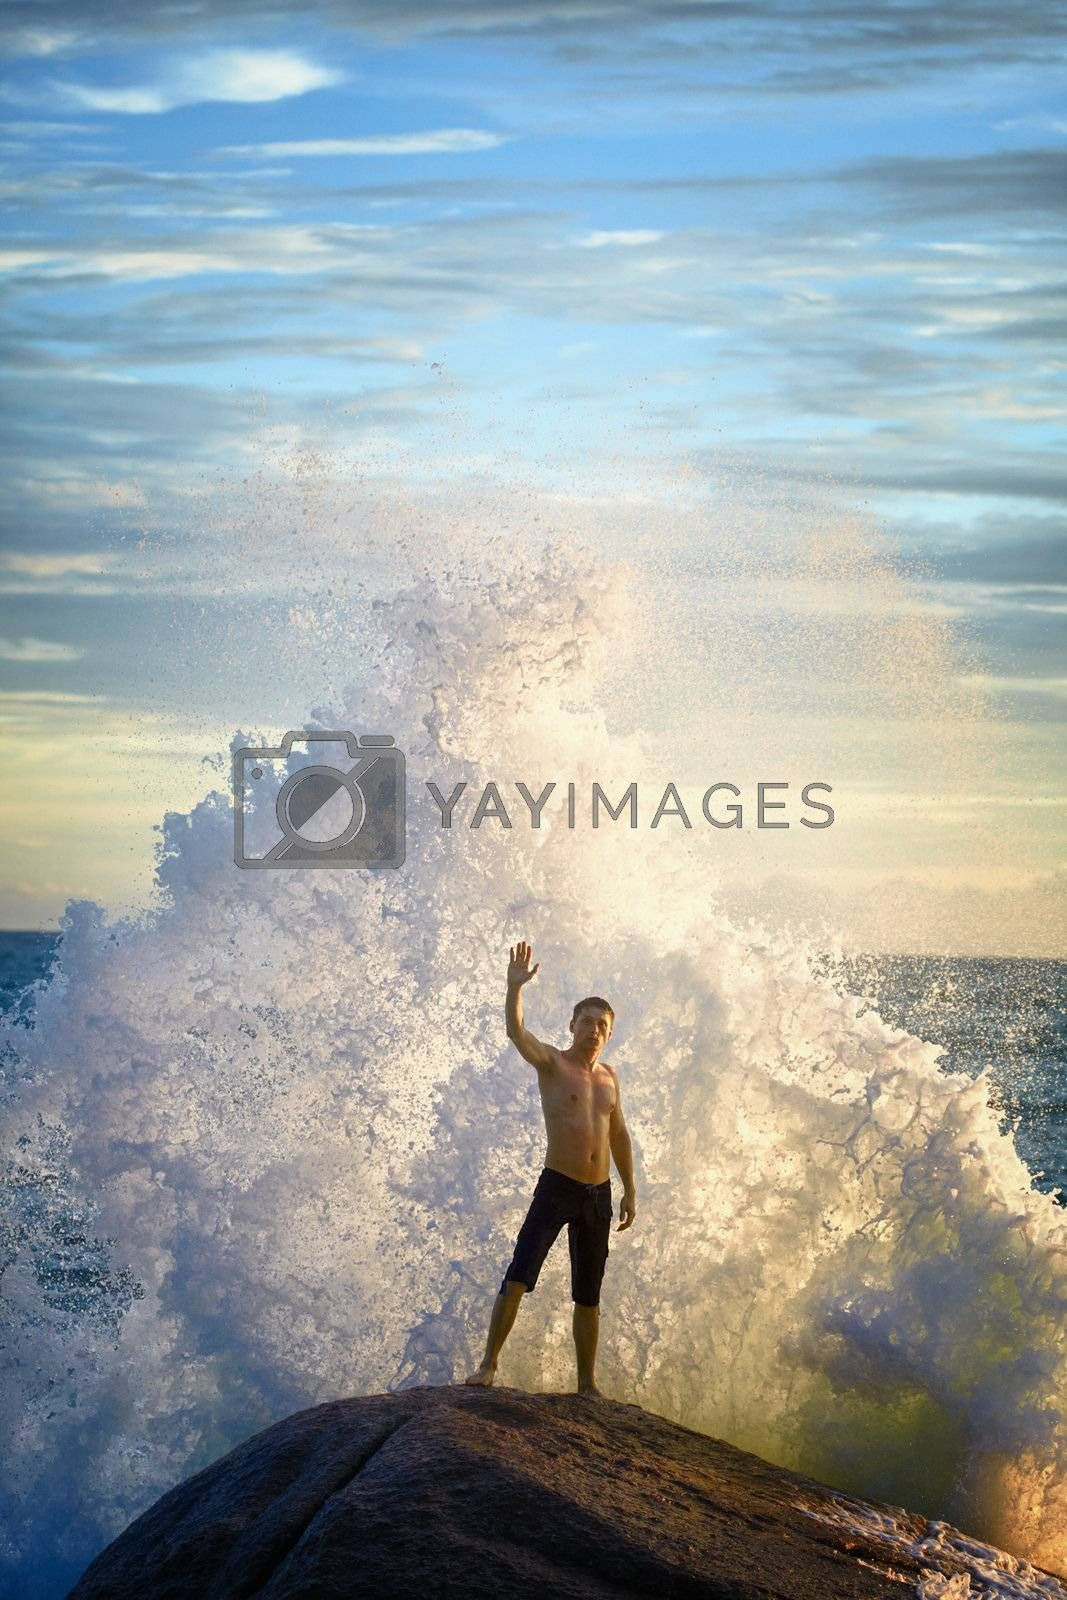 A young man like a god of the sea commands the elements